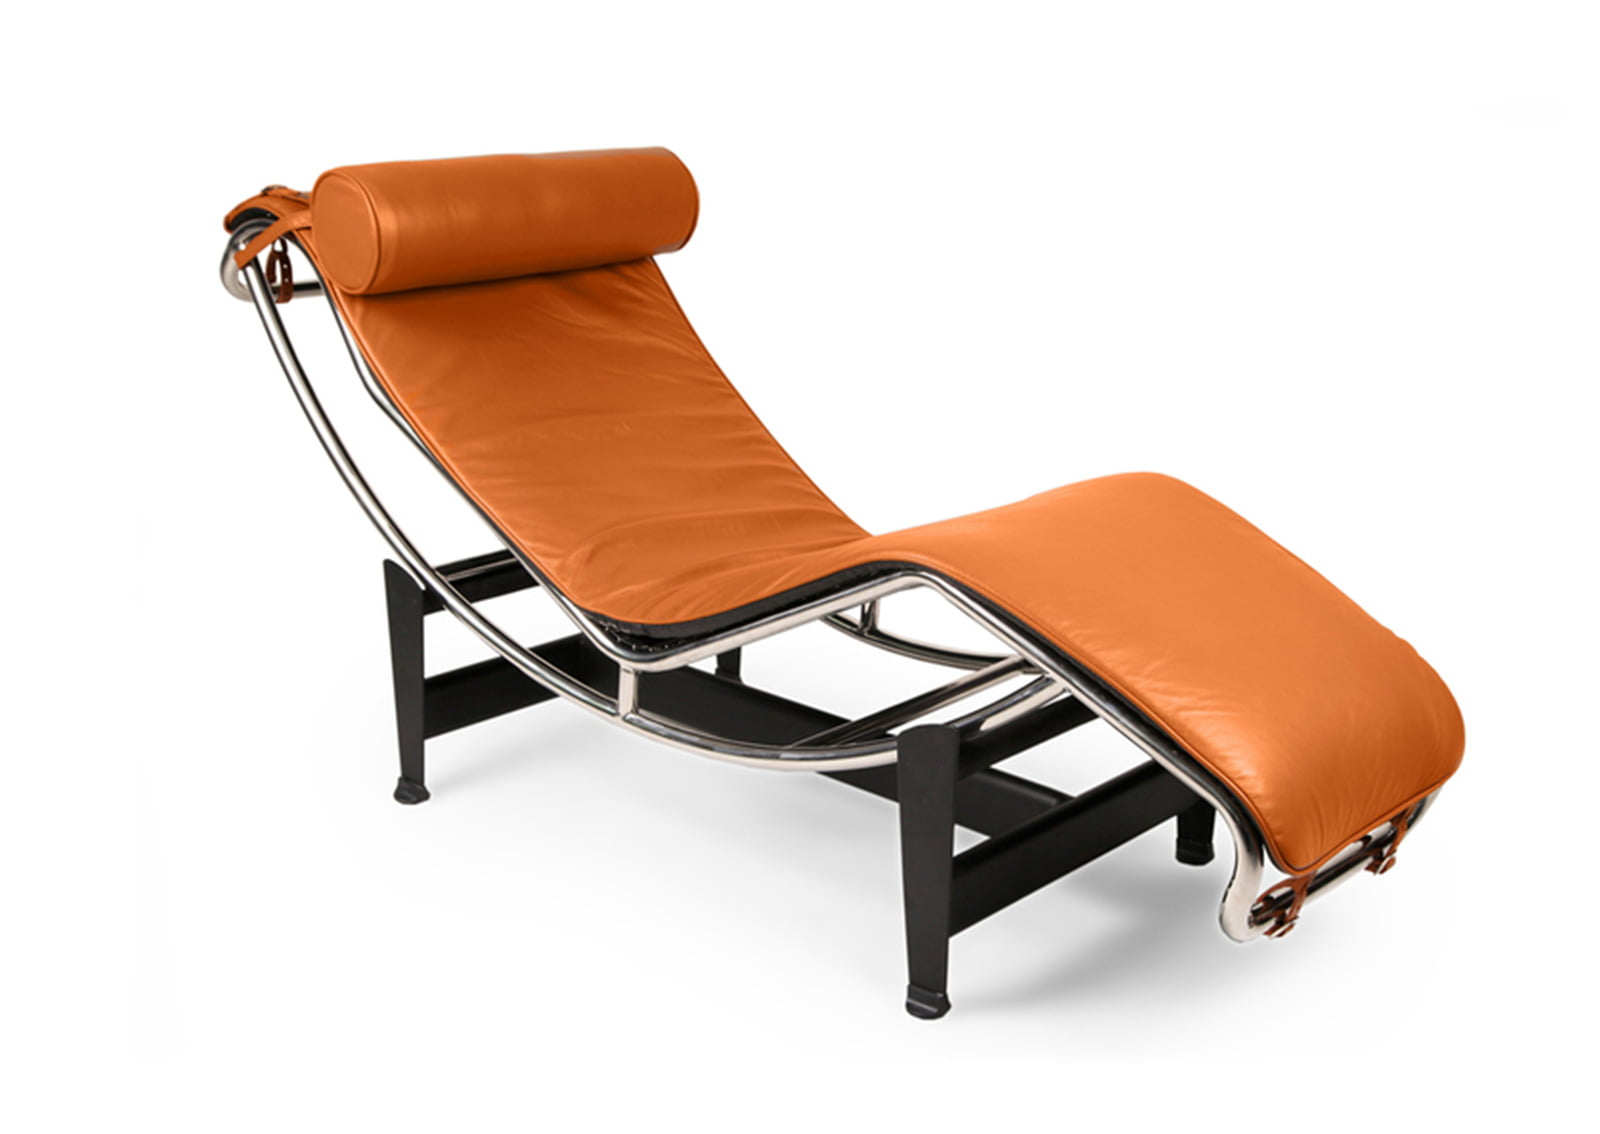 Chaise lounge chair red leather chaise lounge chair for Chaise furniture sale